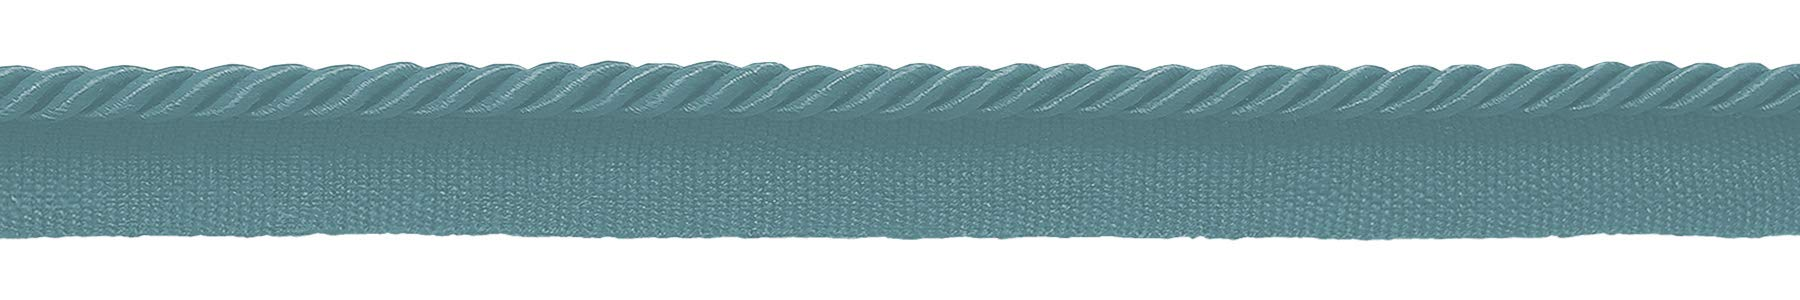 DÉCOPRO 24 Yard Package|Small 3/16 inch Light Aqua Blue Basic Trim Decorative Rope|Style# 0316S (21976)|Color: Ocean Blue - M17|72 Ft / 21.9 Meters by DÉCOPRO